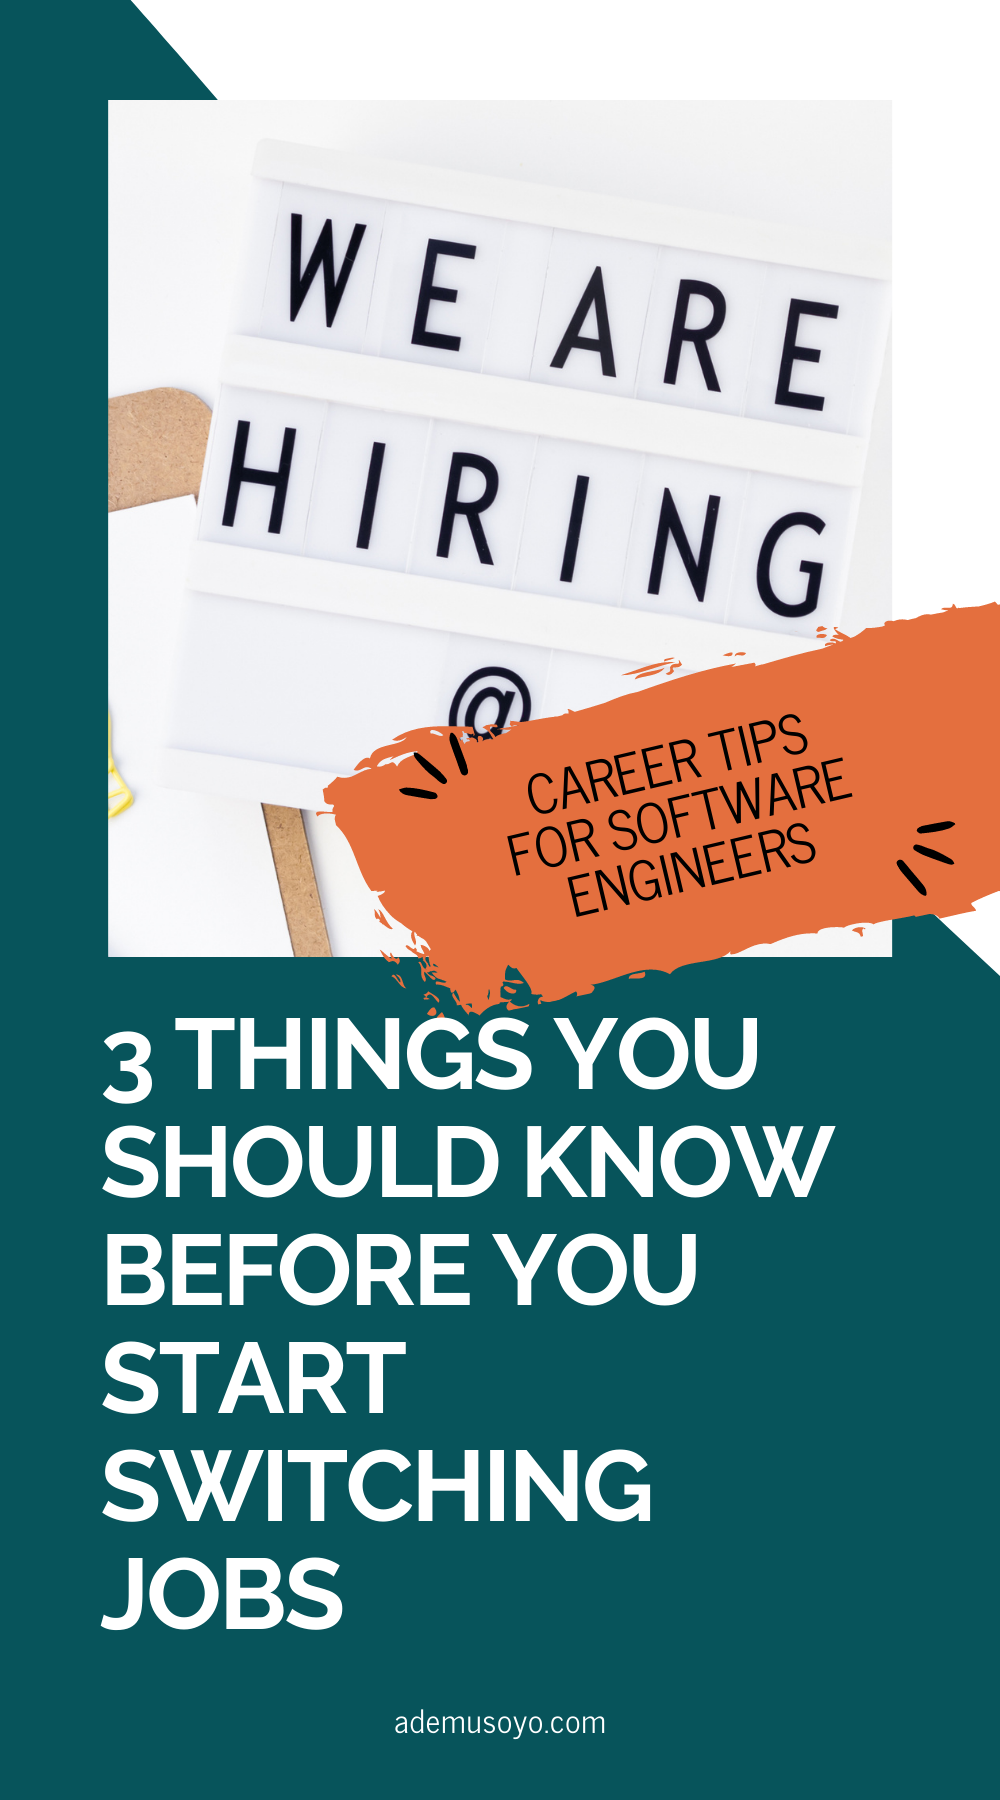 Here's What You Should Know Before You Start Switching Jobs